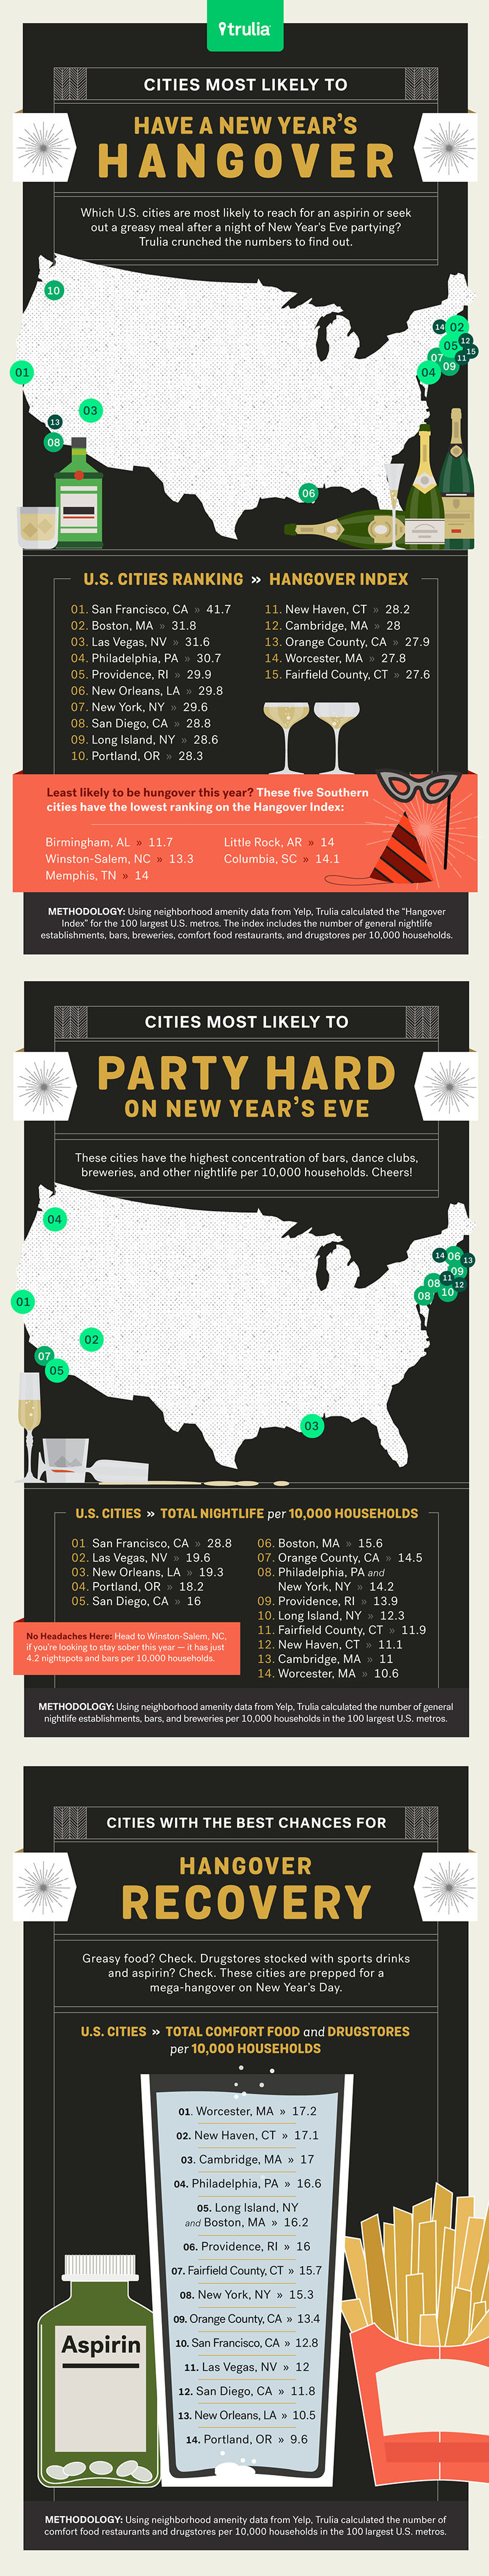 Trulia-Miles-Quillen-Infographic-Cities-Most-Likely-To-Have-A-New-Years-Hangover